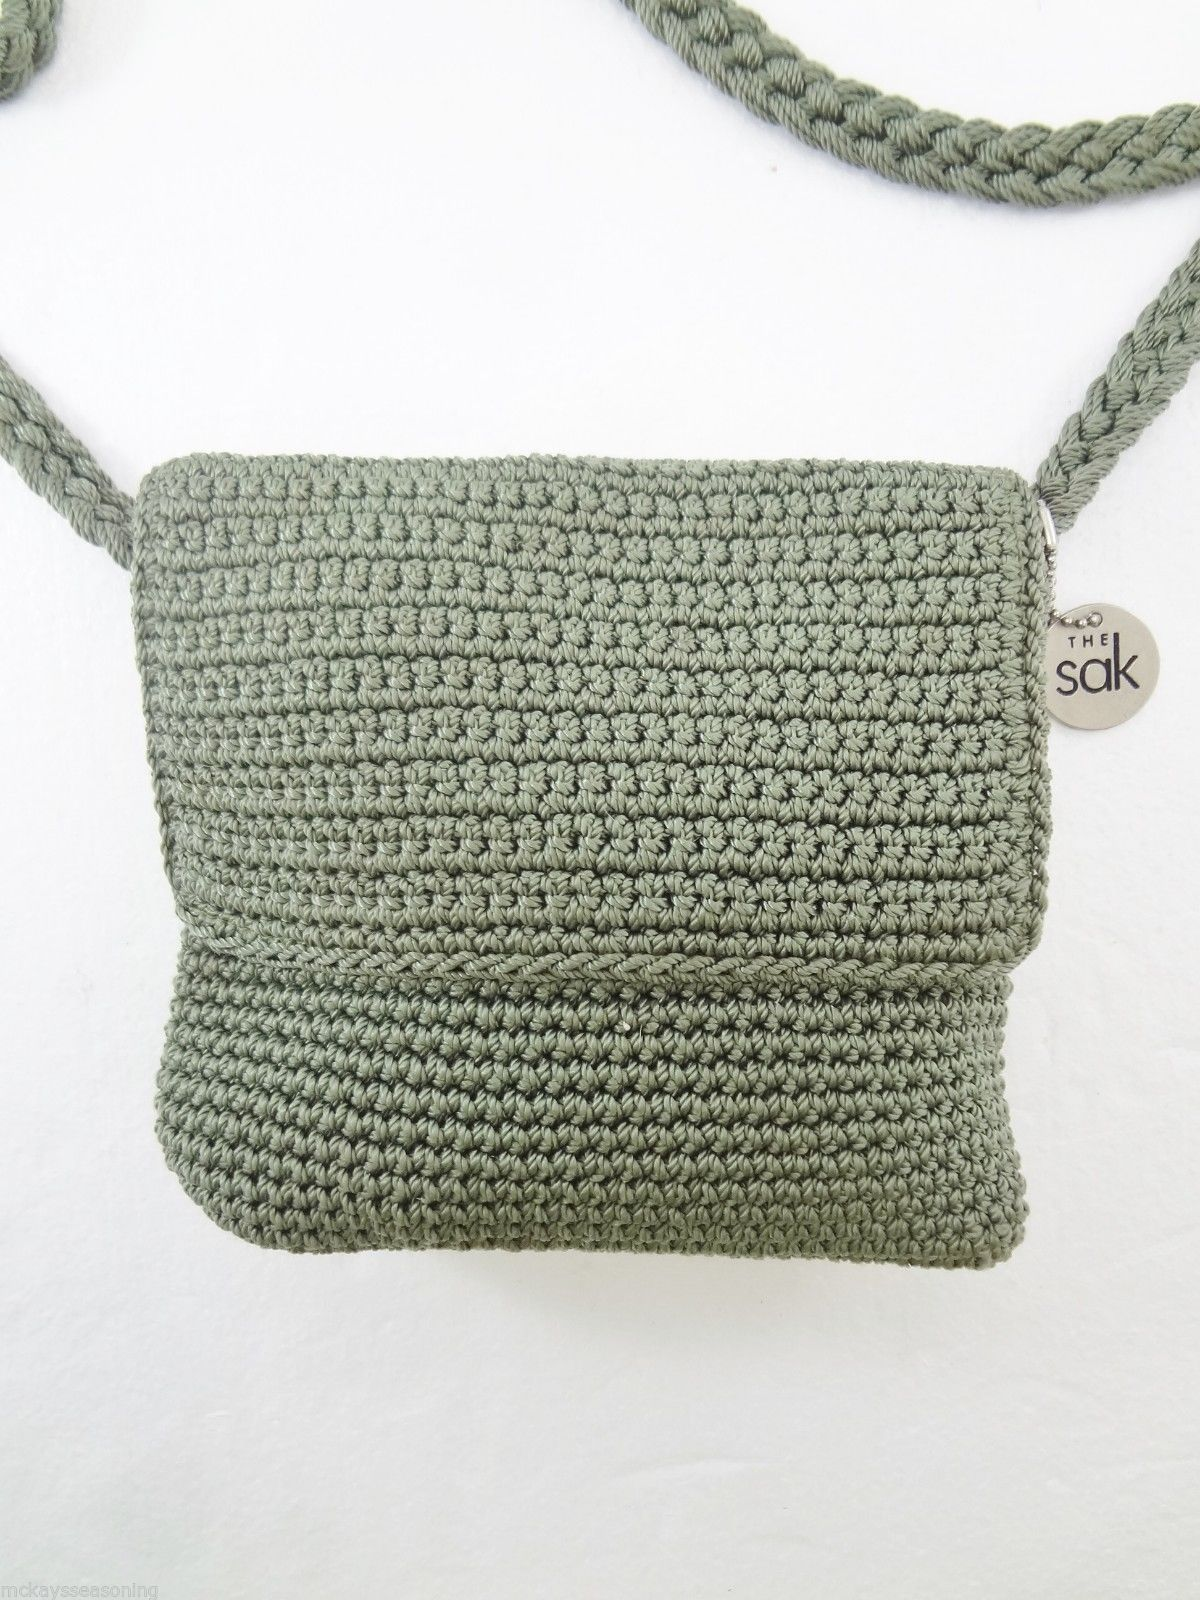 Le Sak Crochet Bags : The Sak Sage Green Crochet Small Cross-Body Shoulder Bag Handbag Purse ...